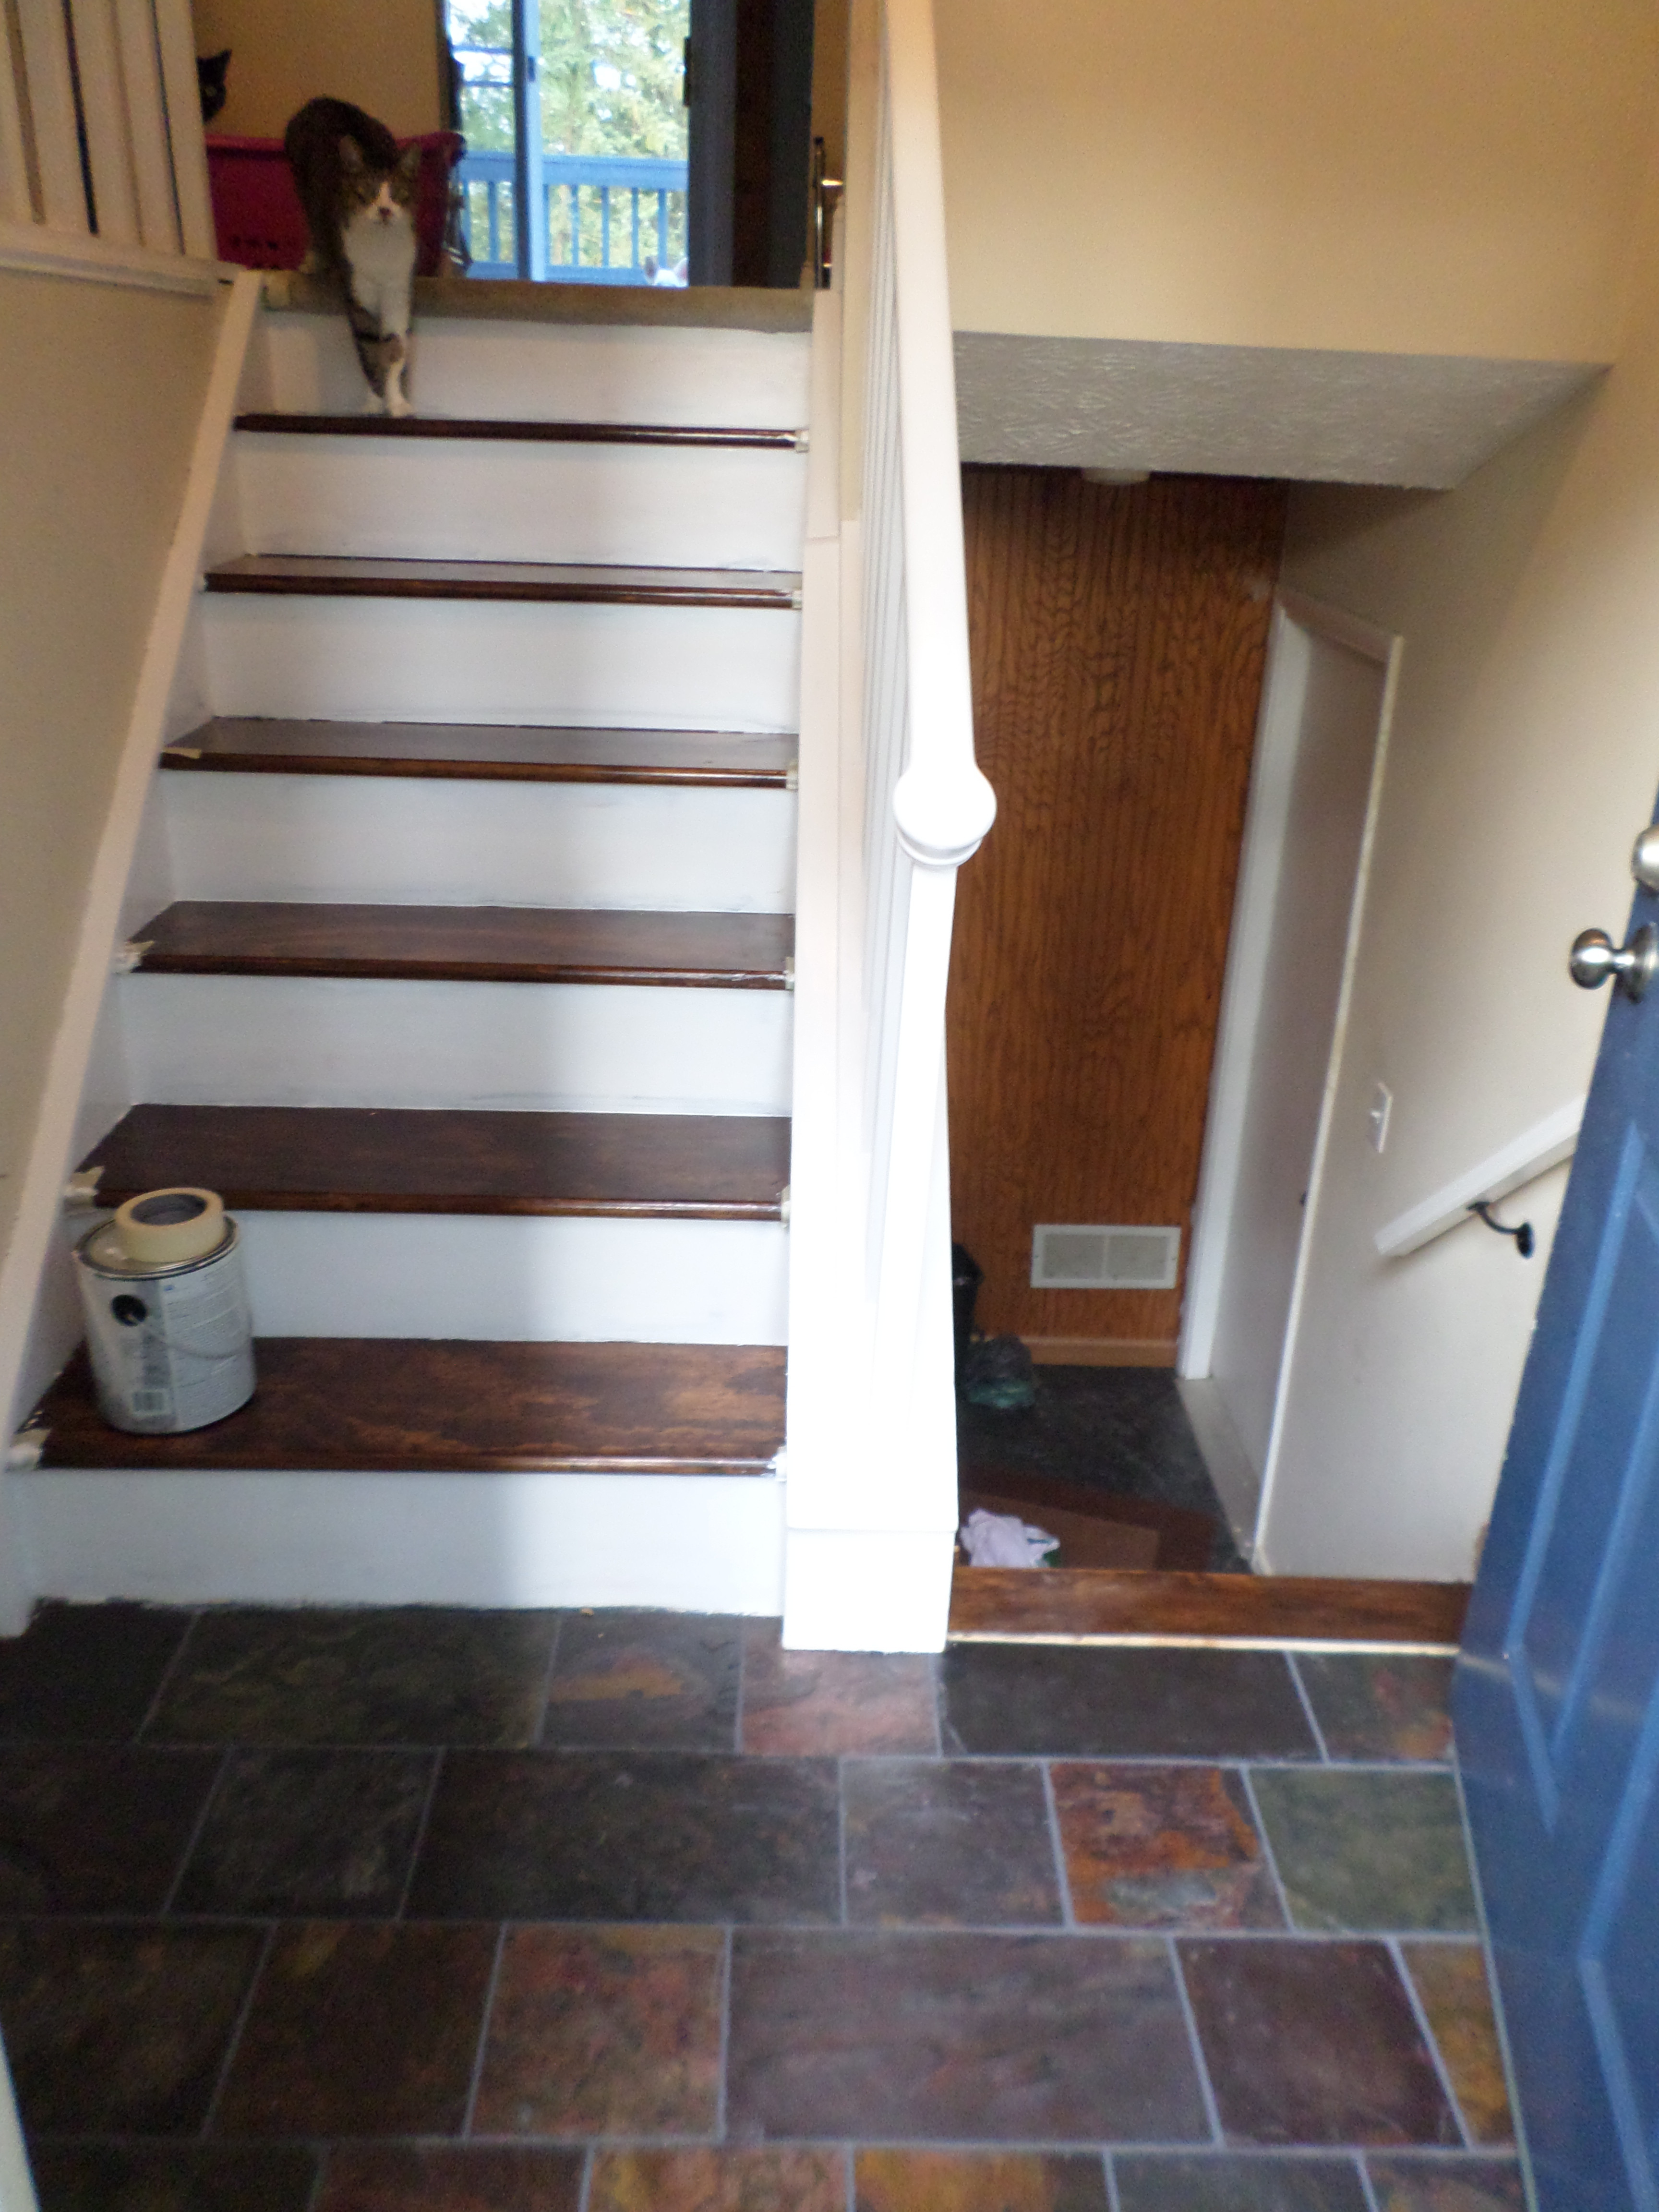 Best ideas about Reddit The Staircase . Save or Pin High Traffic Stairs What would you do HomeImprovement Now.